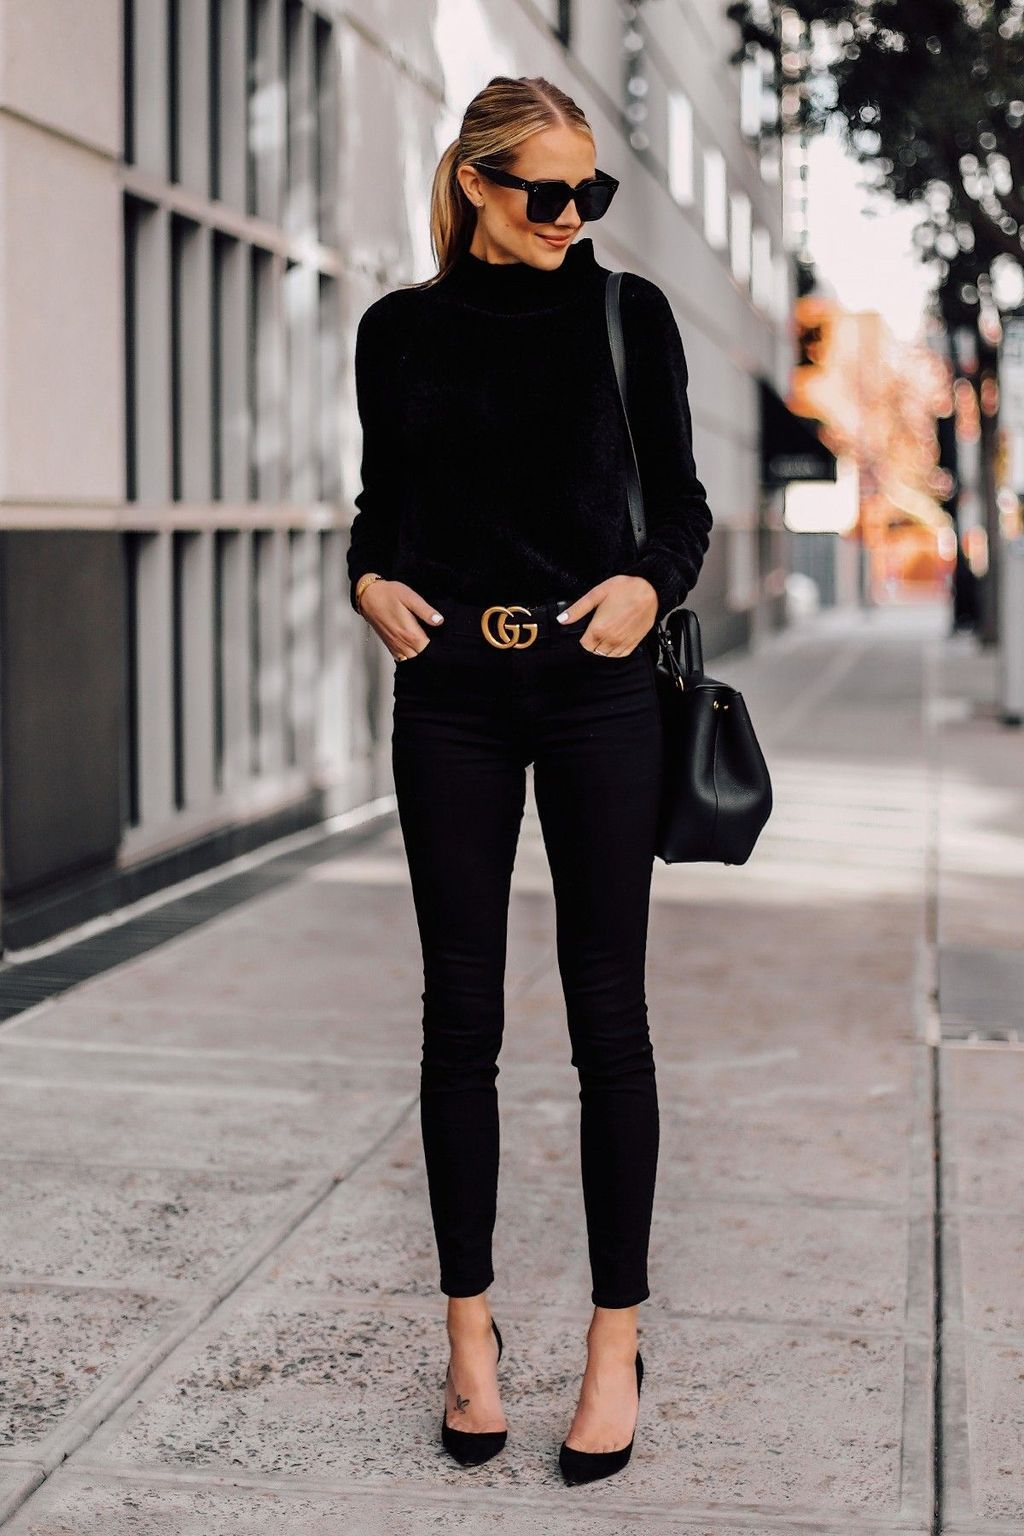 34 Inspiring Women Professional Work Outfit Ideas #womensfashion